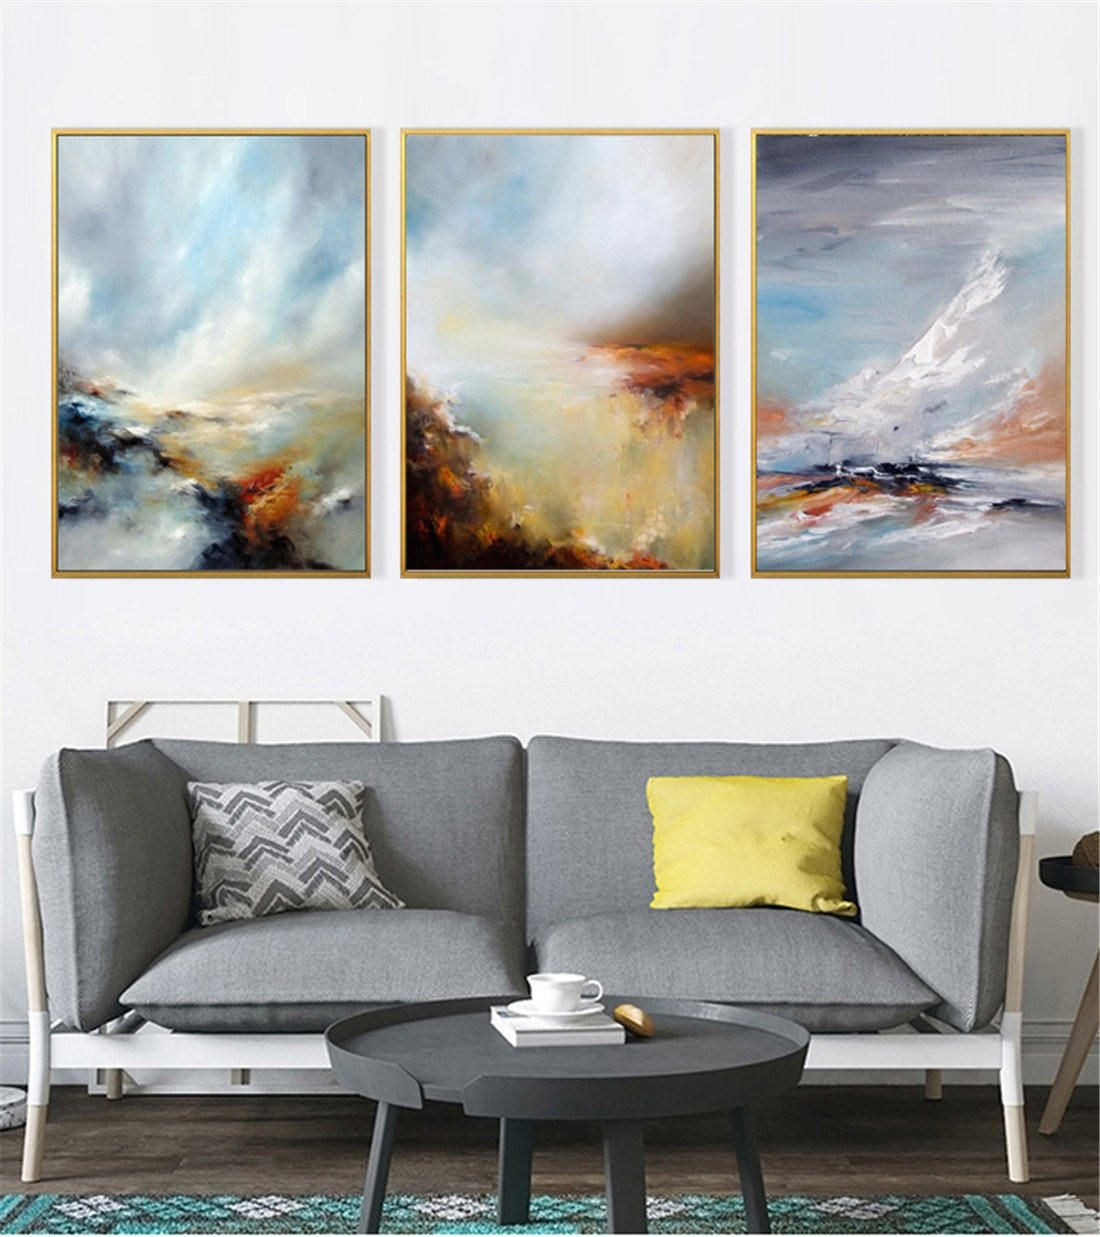 YIZHANGNordic Simple Abstract Triple Frame Pintura Decorativa Sala de Estar Sofá Pared Restaurante Dormitorio Mural (40  60cm  3)